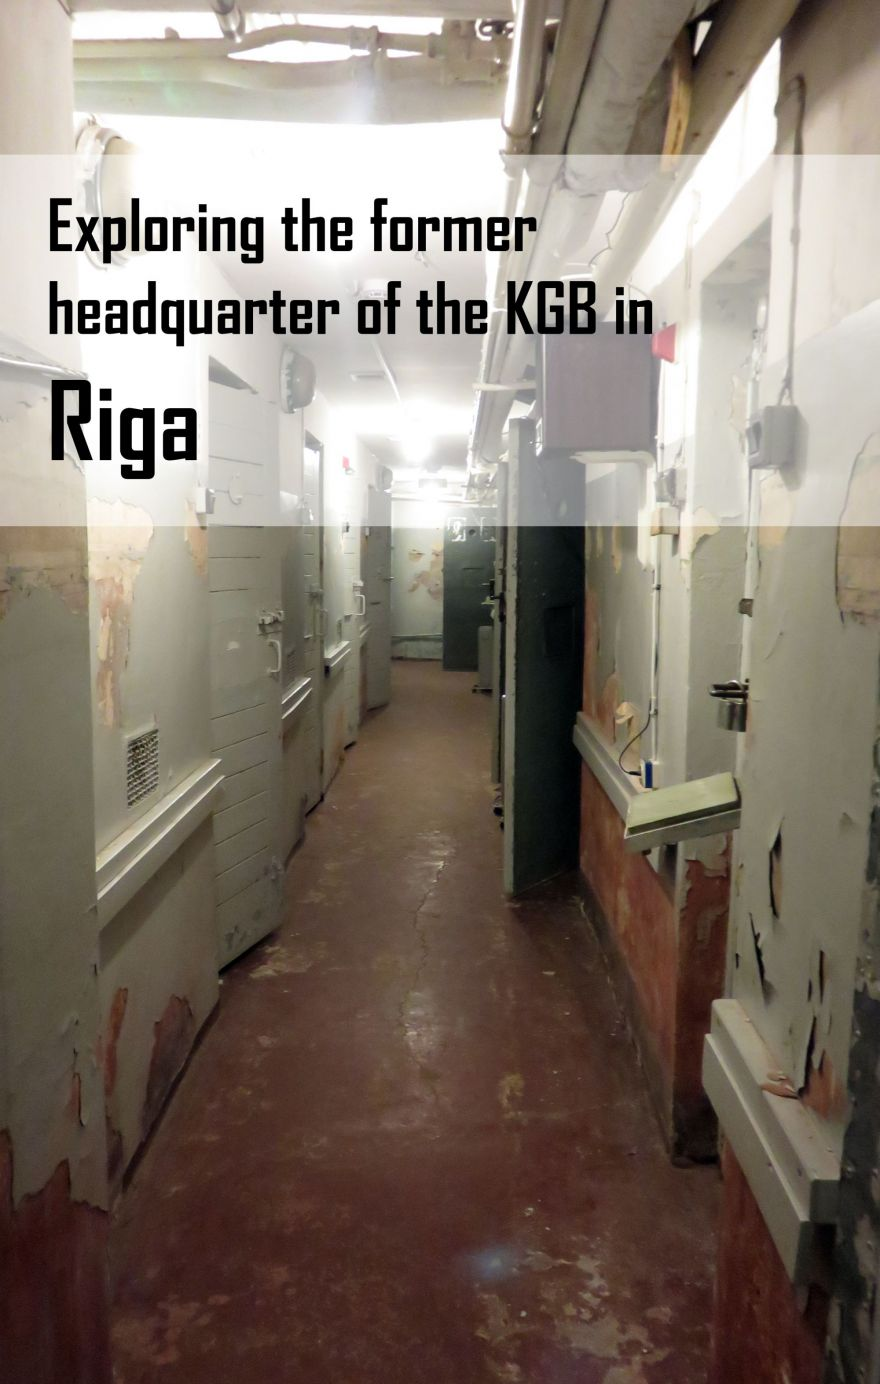 Exploring the former headquarter of the KGB in Riga